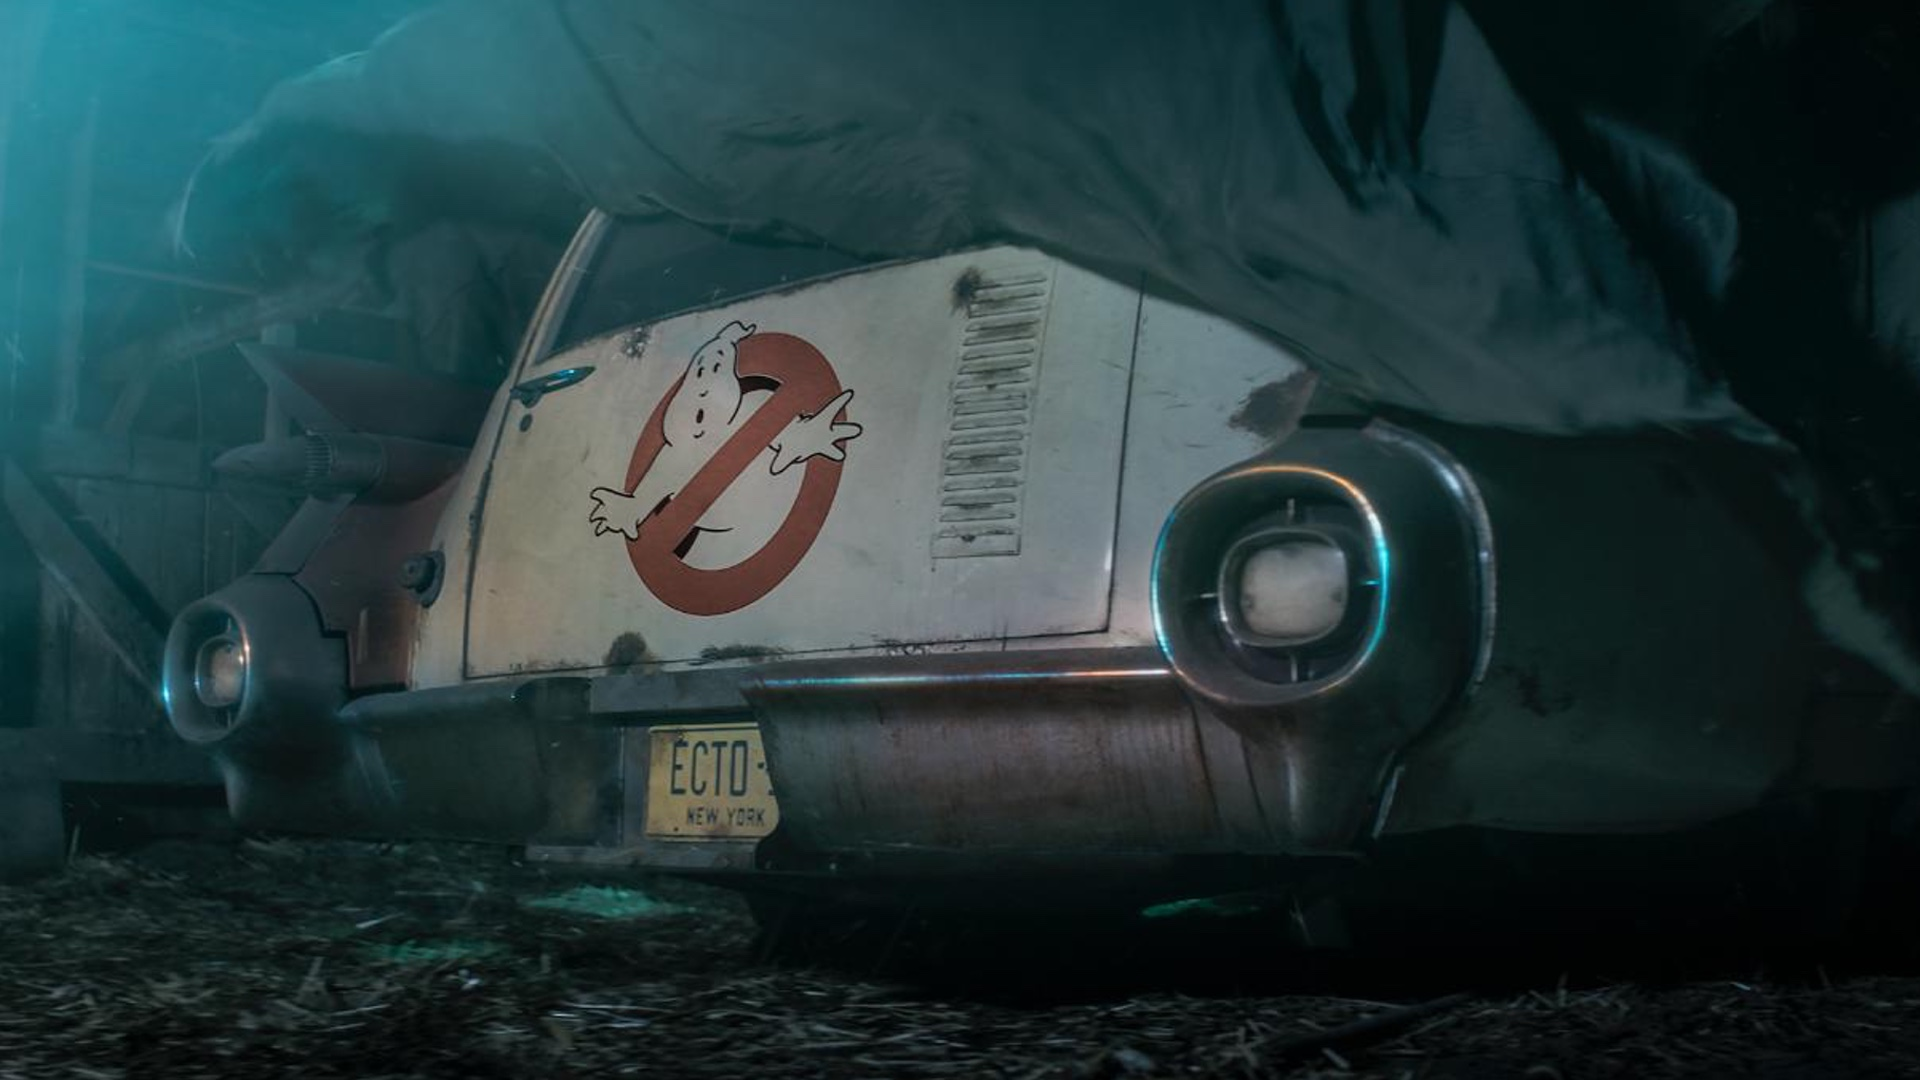 jason-reitmans-ghostbusters-3-will-start-shooting-this-summer-social.jpg